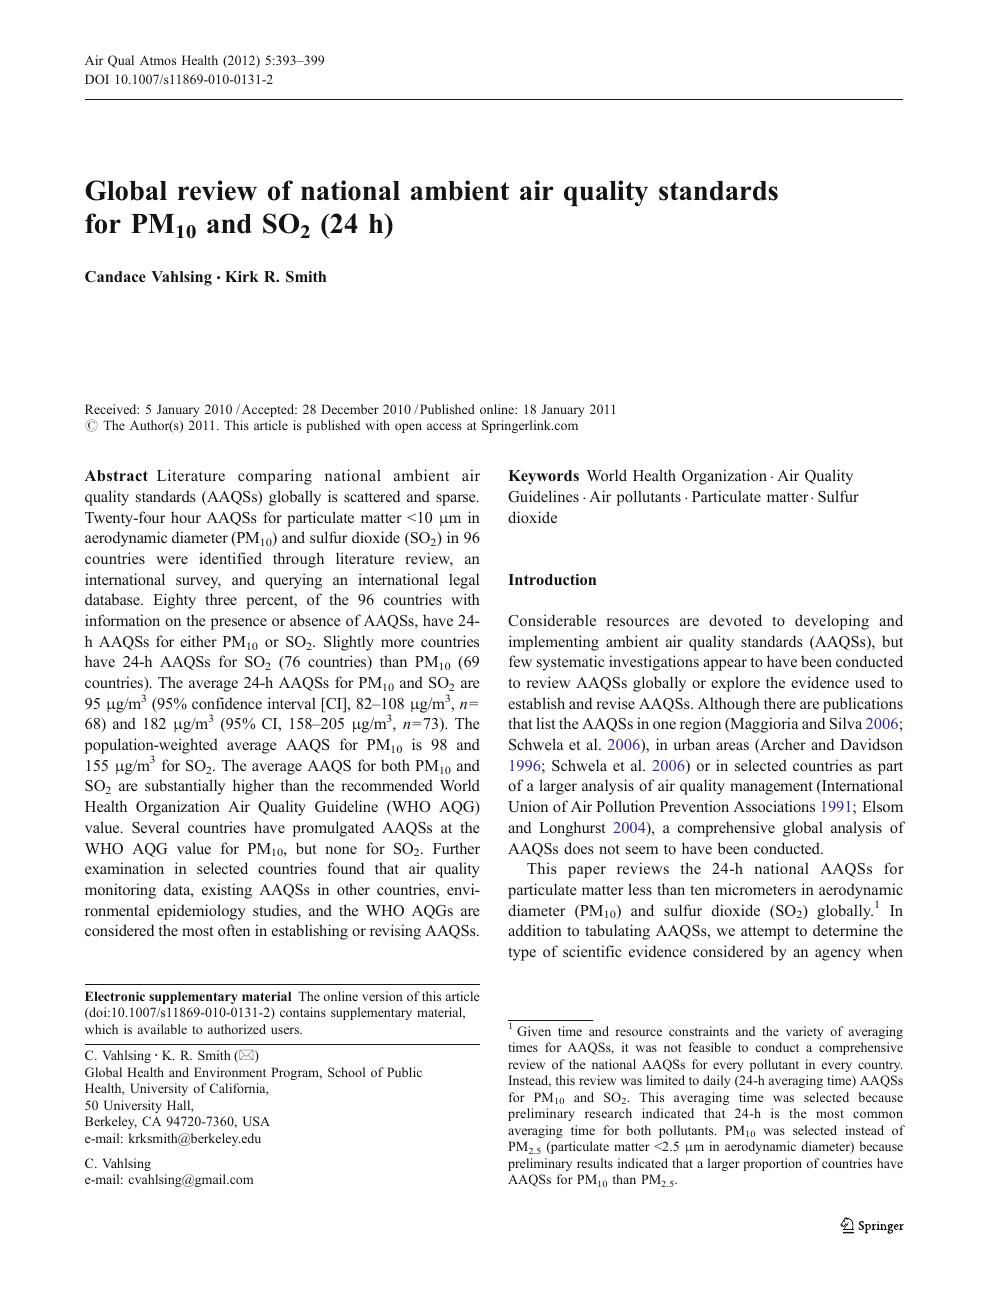 Global review of national ambient air quality standards for PM10 and